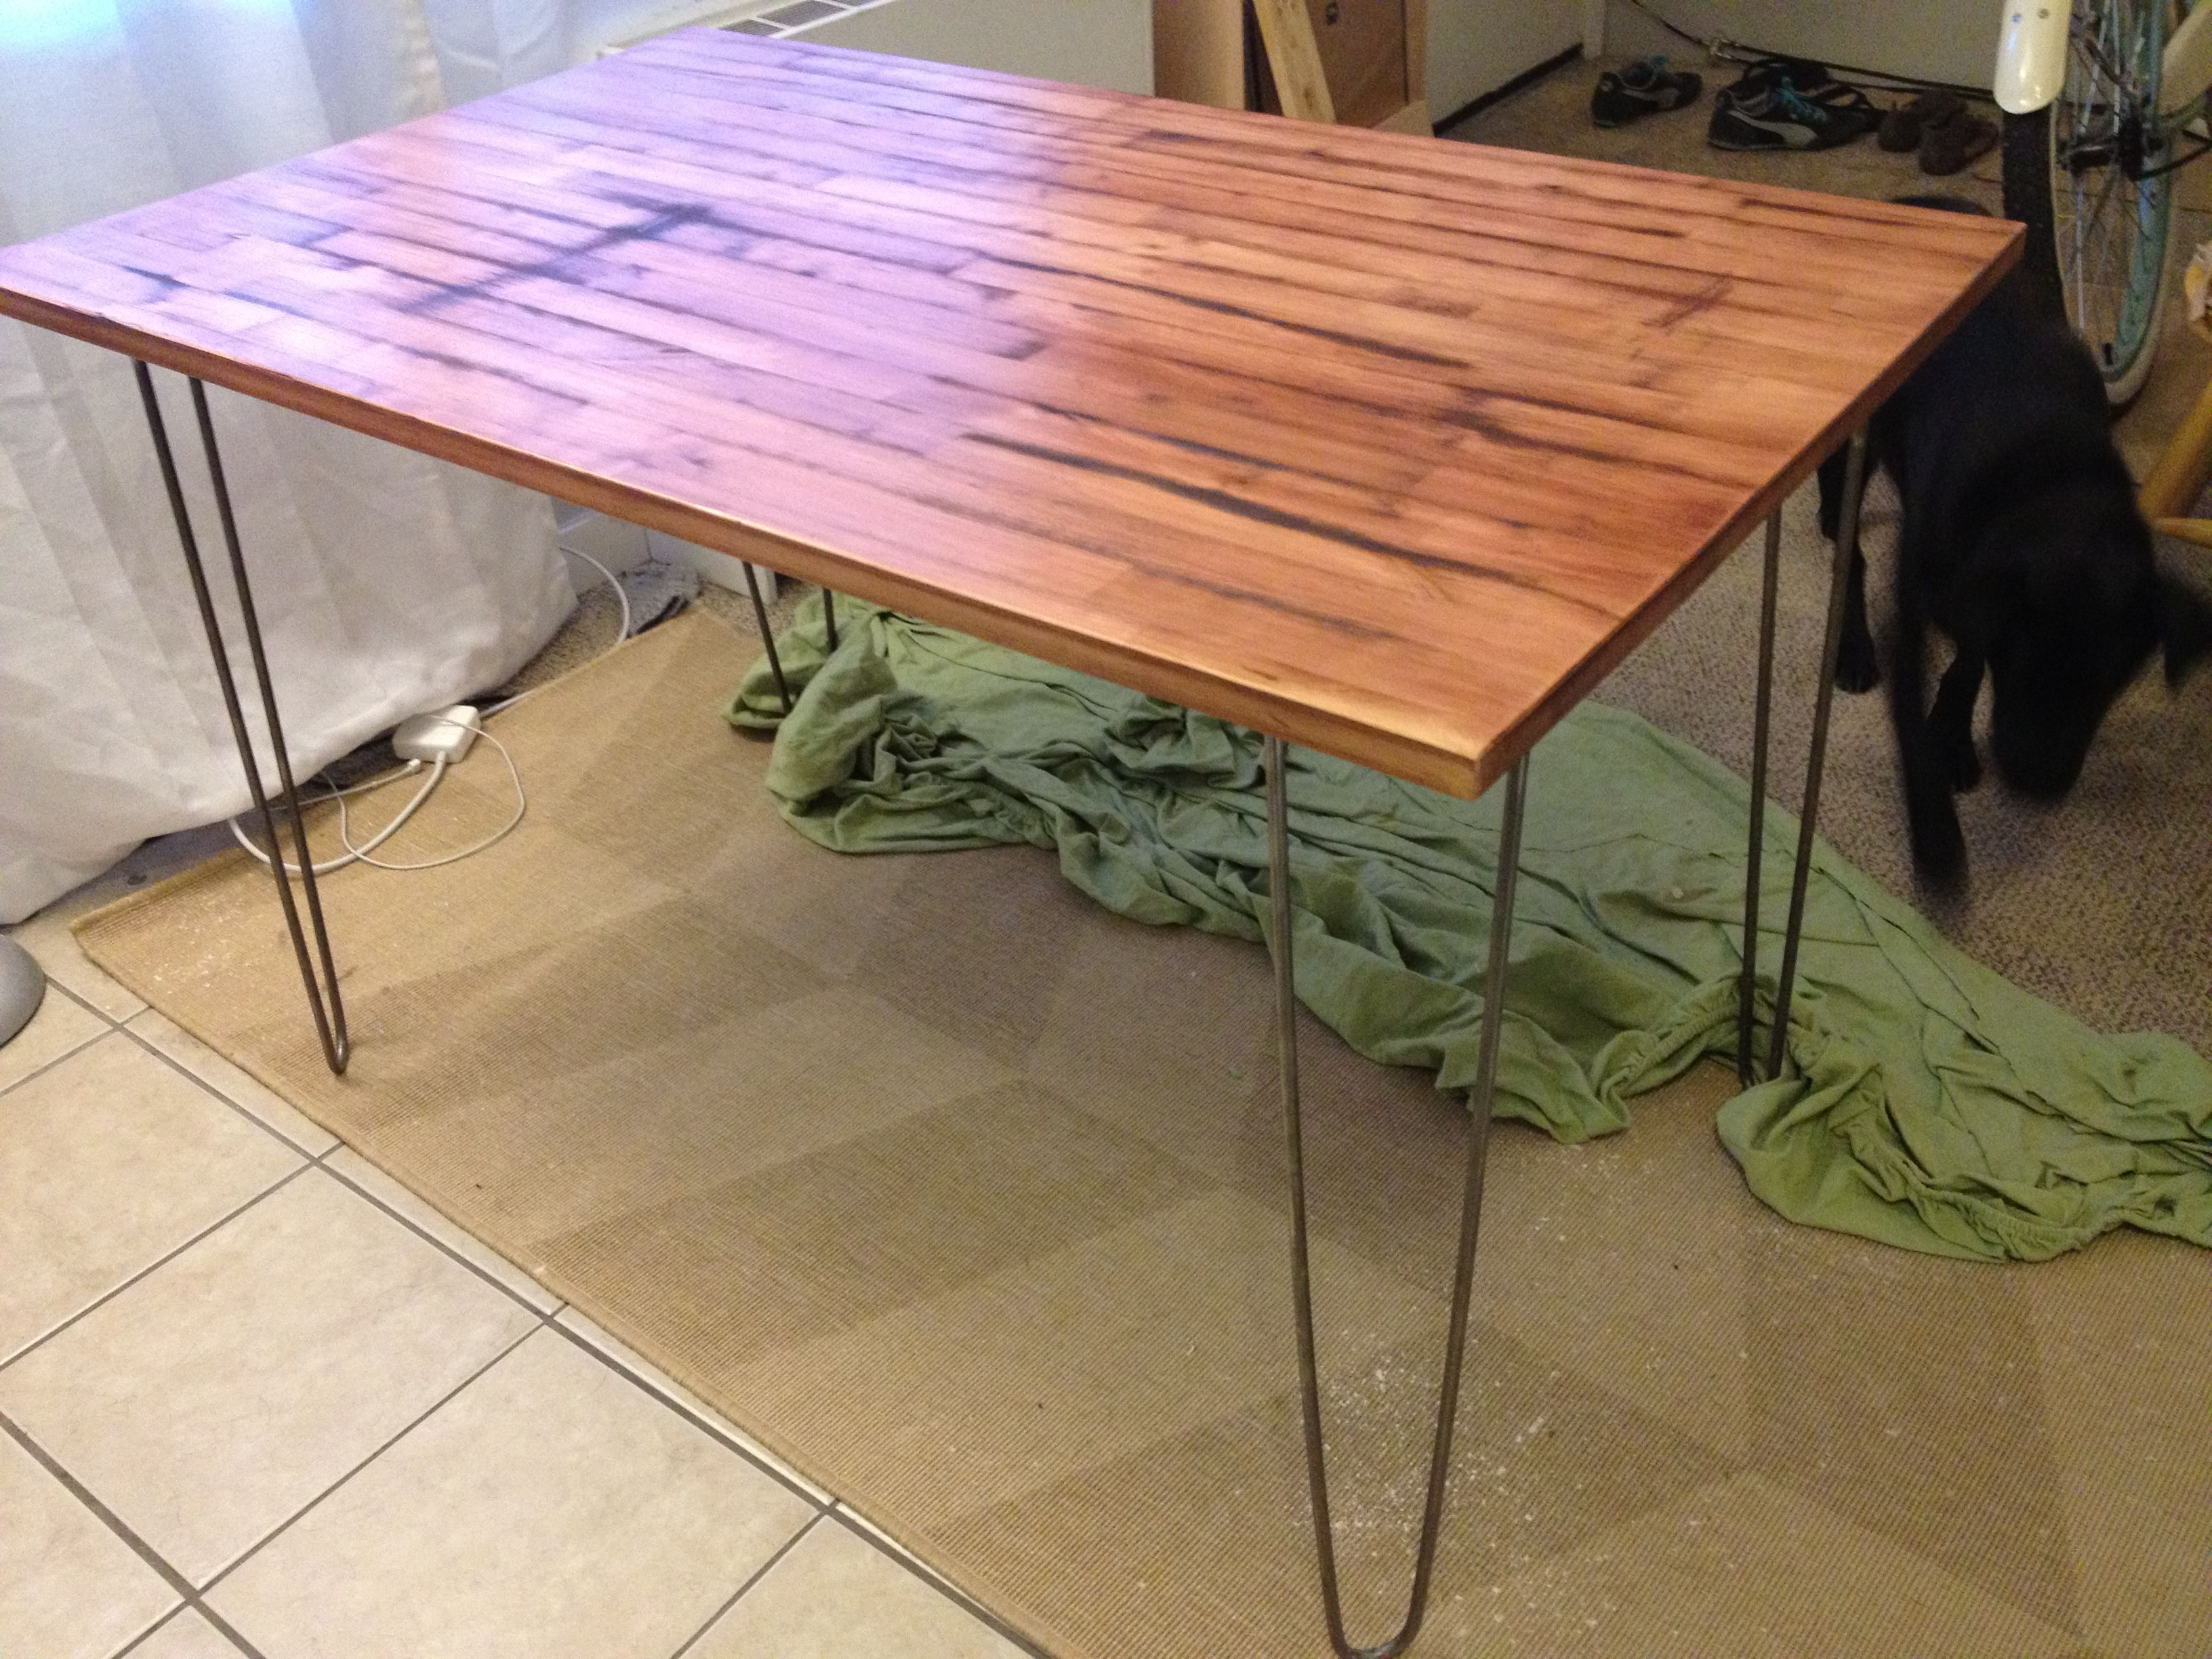 Ikea Table For Entryway With Nice Hairpin Legs And Reclaimed Wood Top Design